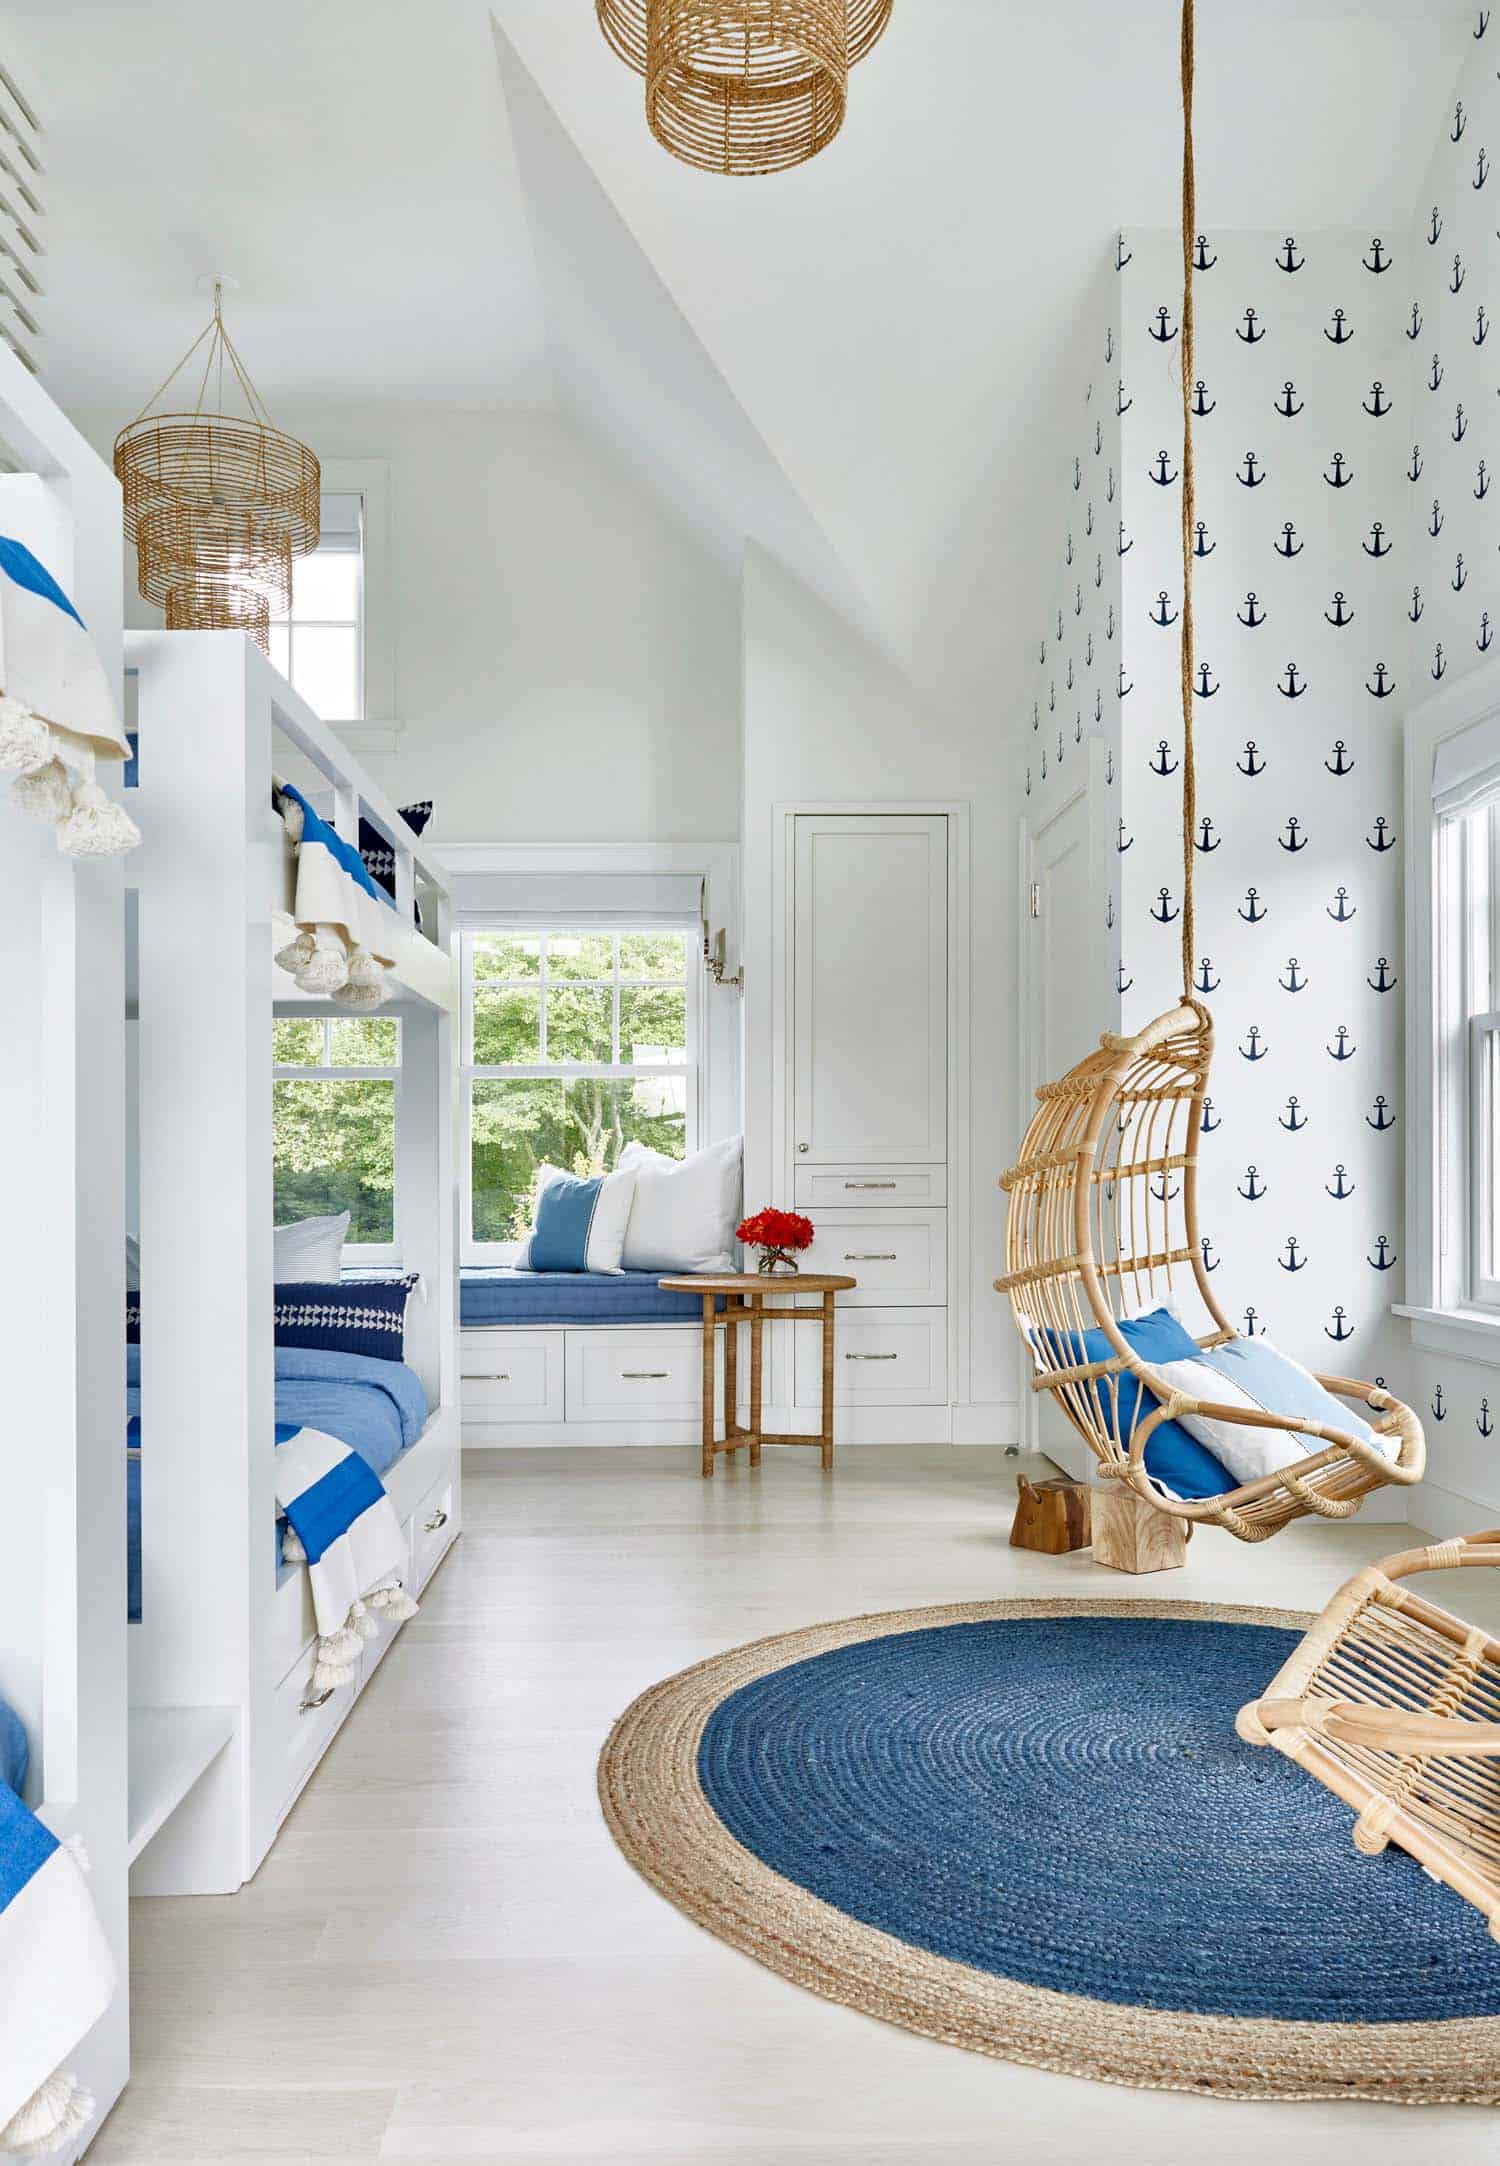 Amagansett Beach House-Chango-Co-40-1 Kindesign